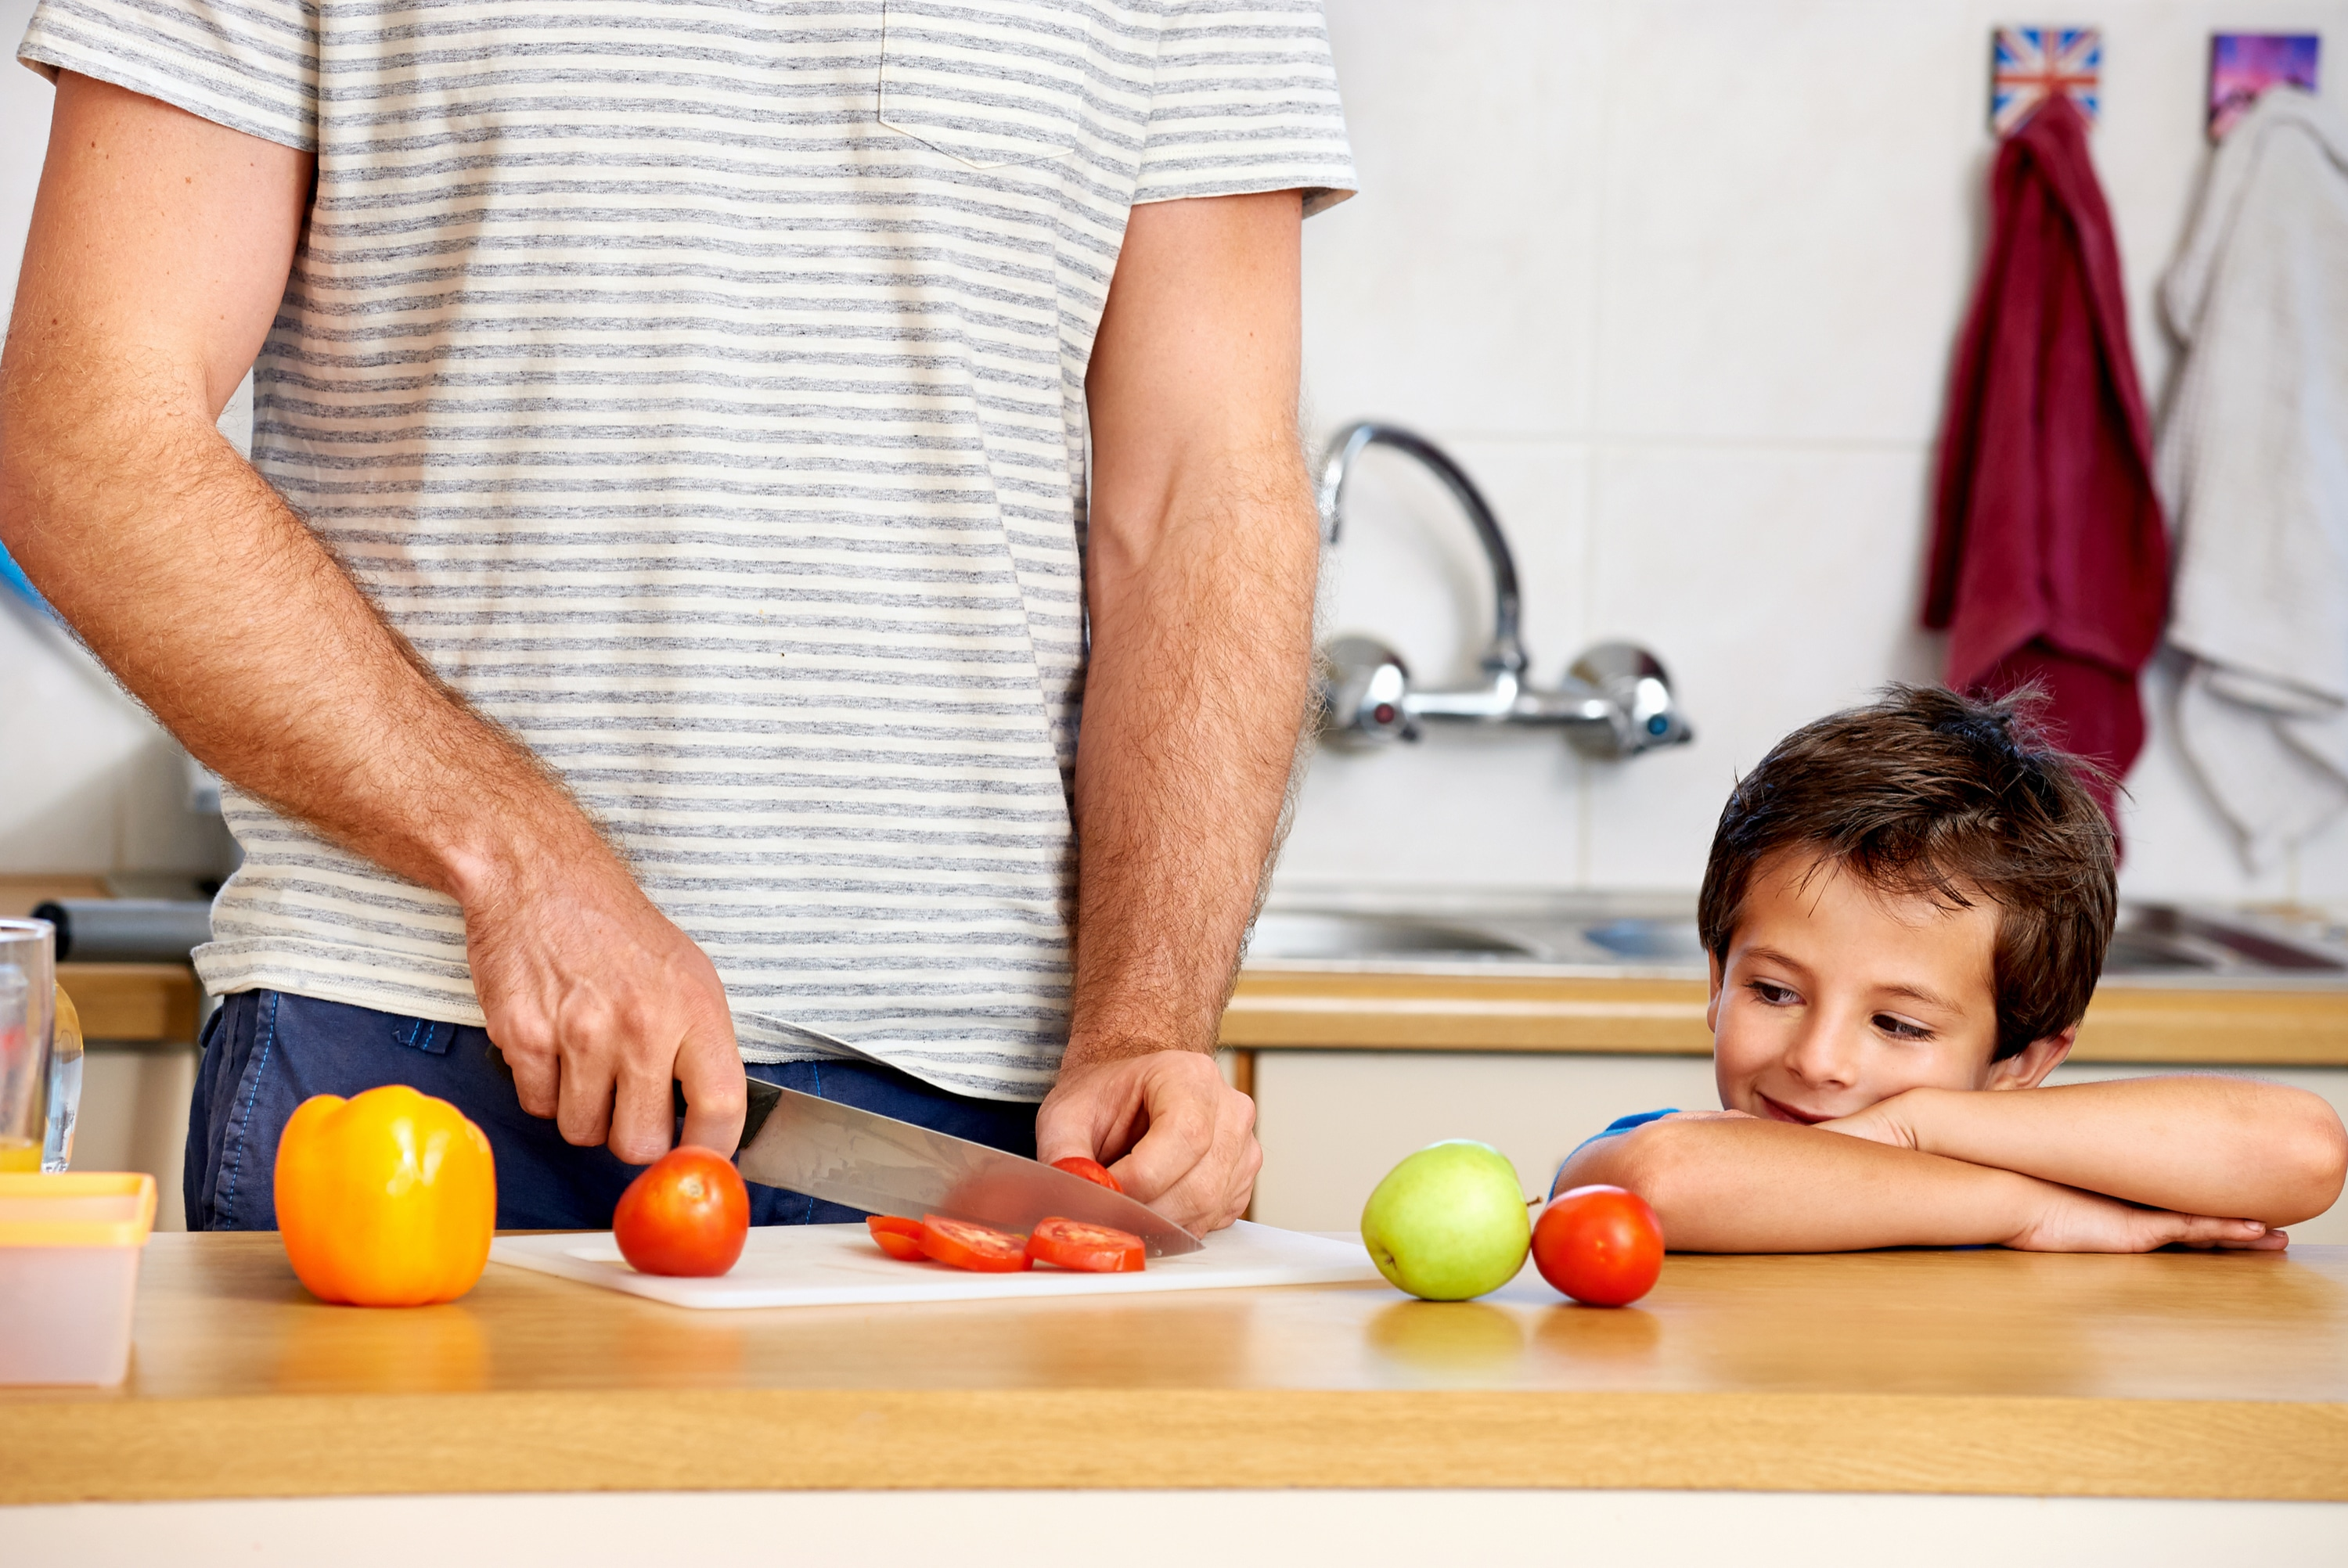 Man Dad Cooking With Son Chopping